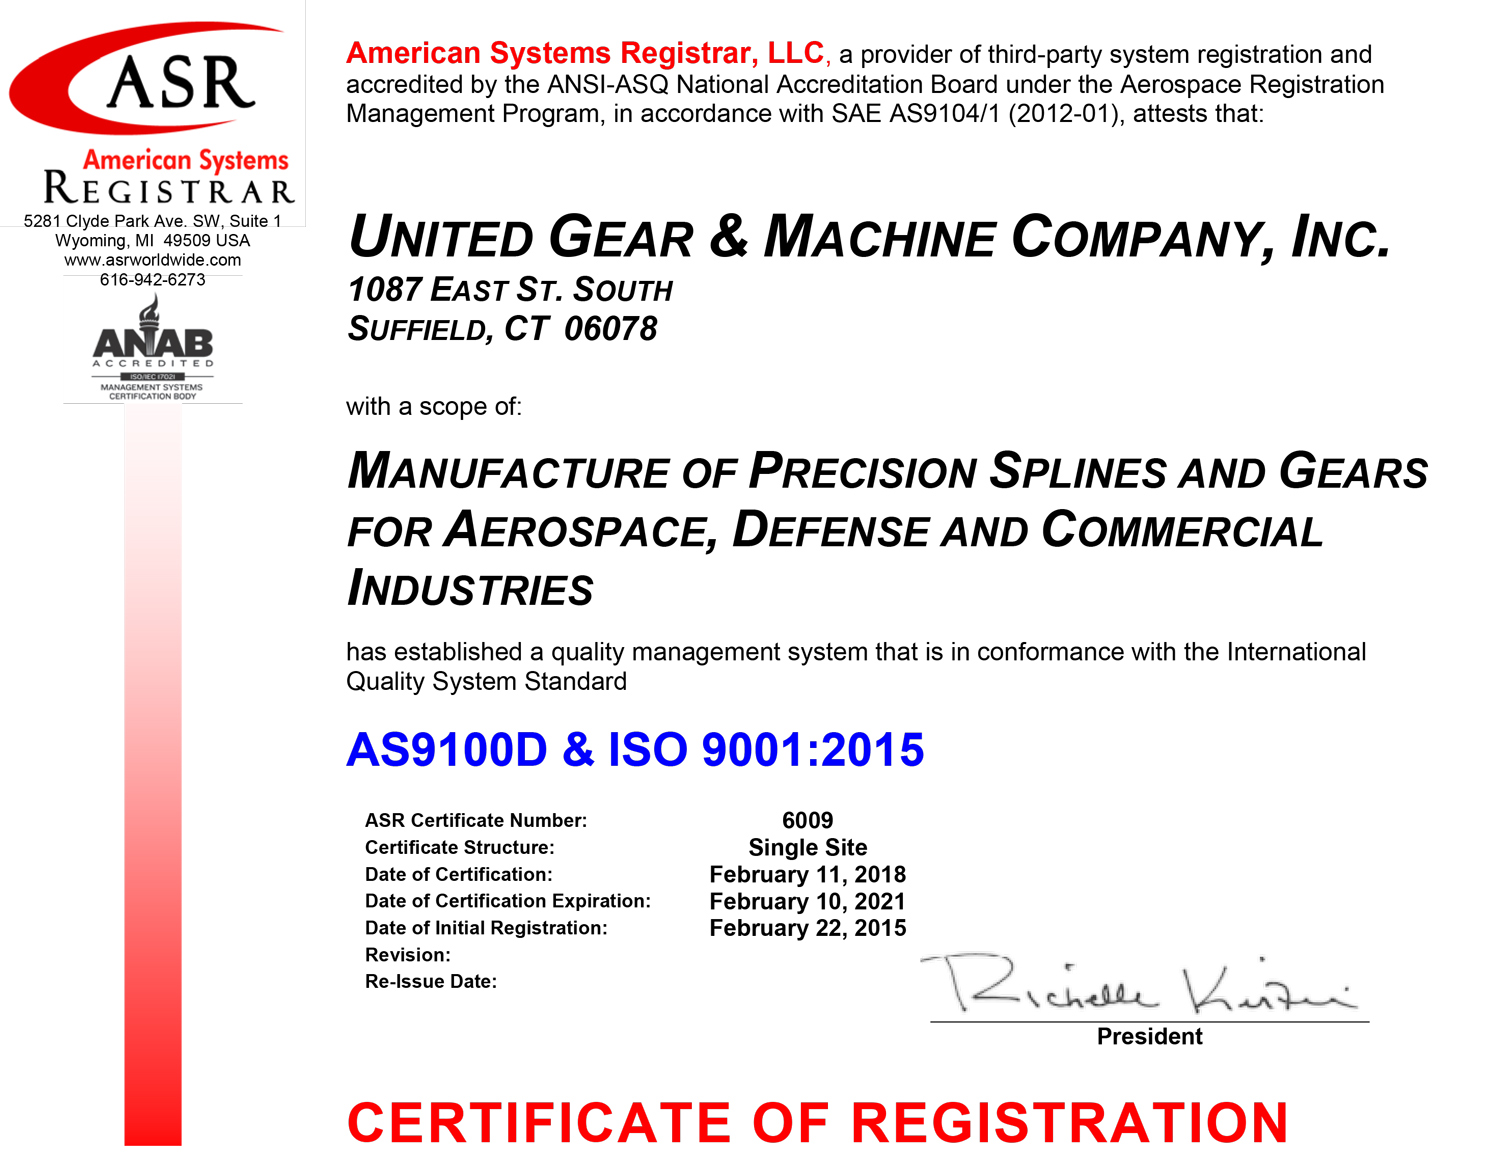 6009-United-Gear-AS9100-Certificate-Feb-2018-signed